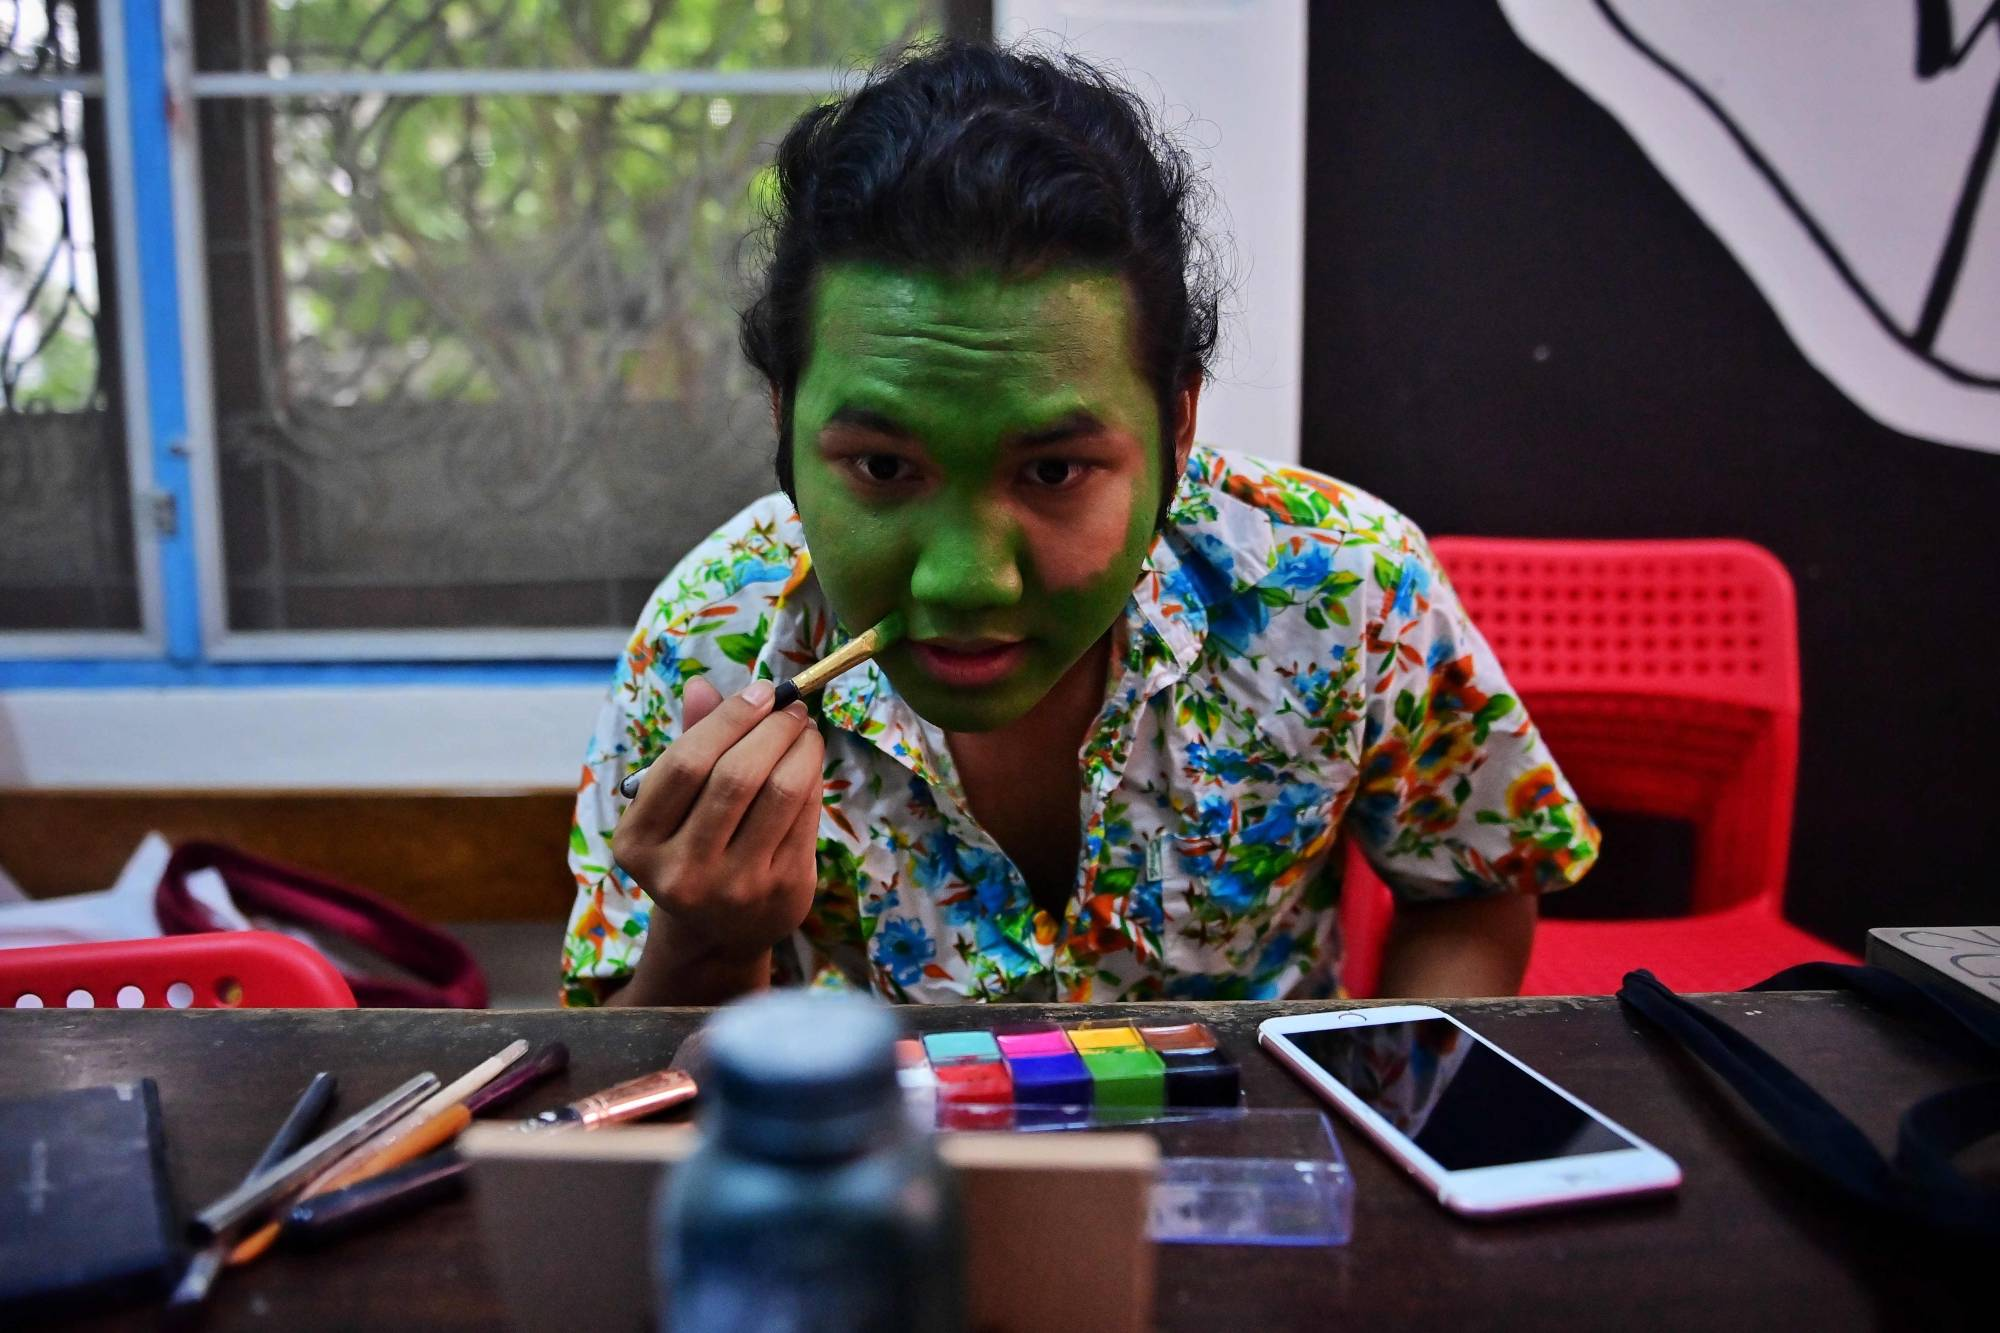 Pro-democracy activist, performing arts student and aspiring drag queen Siraphob 'Raptor' Attohi transforms himself into Elphaba from the hit musical 'Wicked' before a gay pride parade in Bangkok earlier this month. | AFP-JIJI